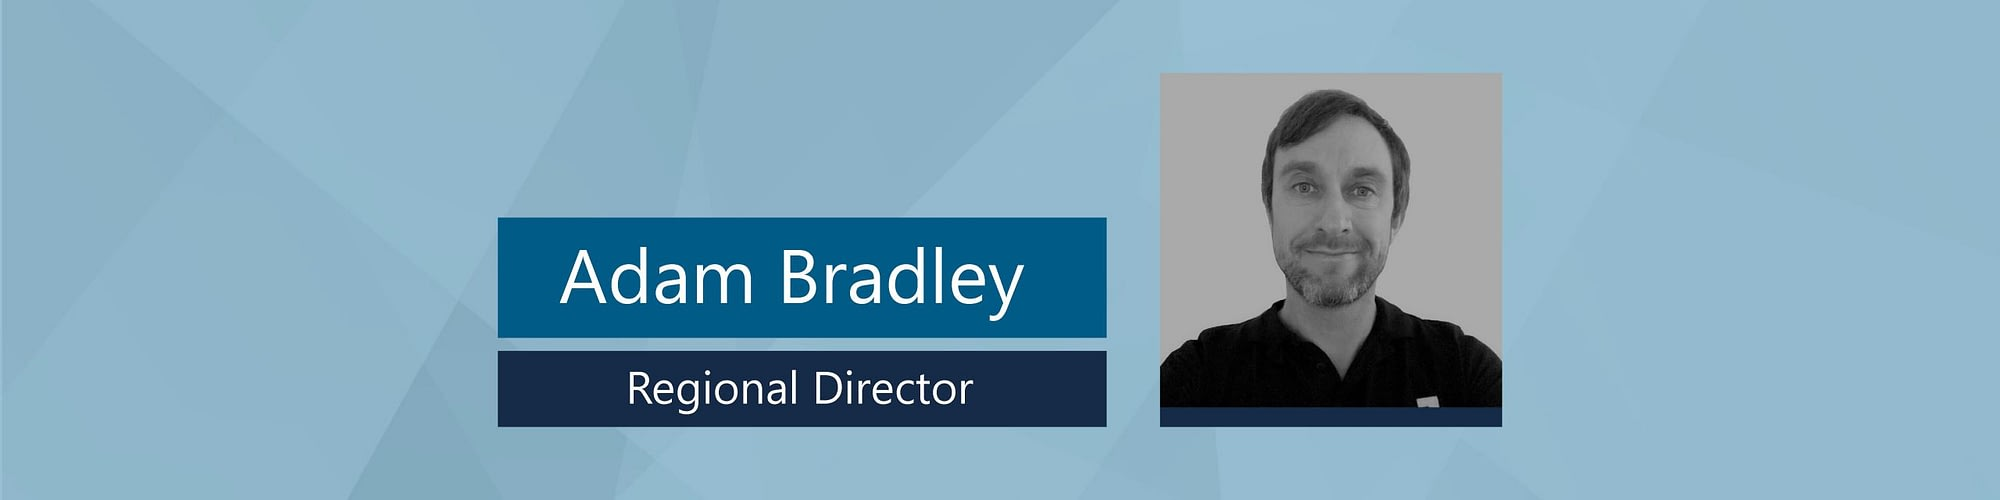 Adam Bradley joins us as Regional Director for the East